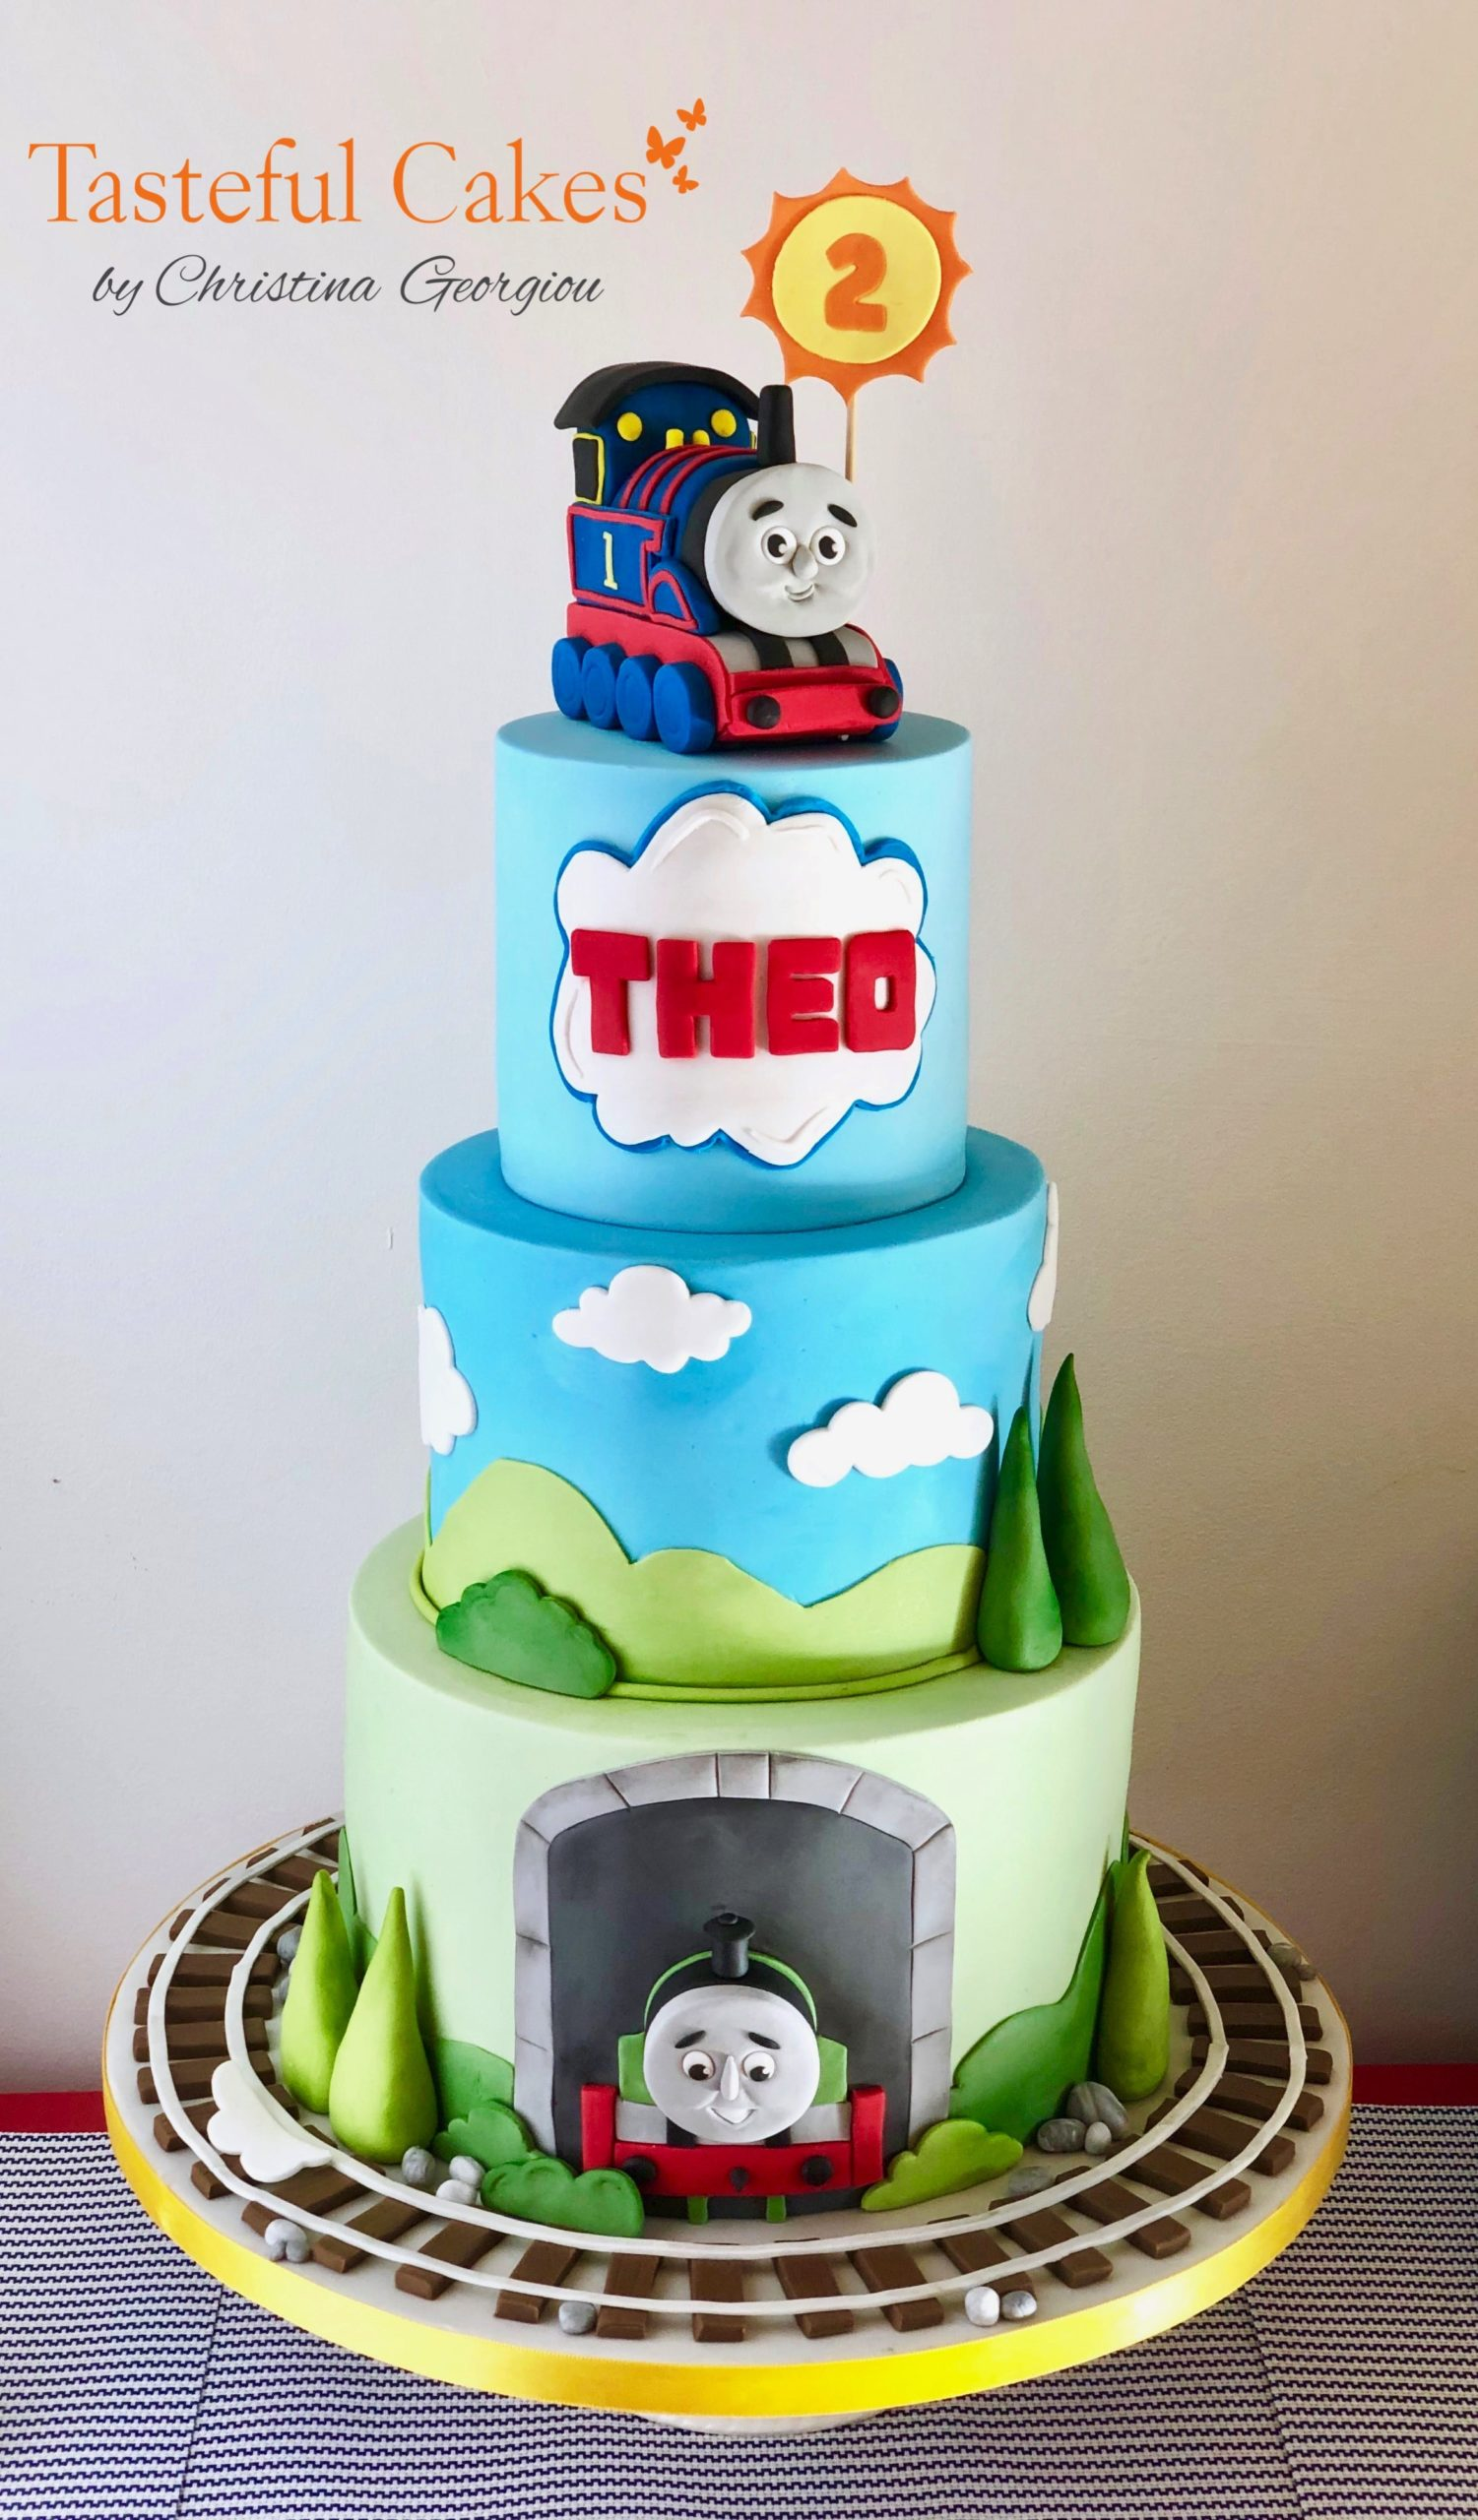 Enjoyable Thomas The Tank Engine Birthday Cake Tasteful Cakes By Funny Birthday Cards Online Fluifree Goldxyz